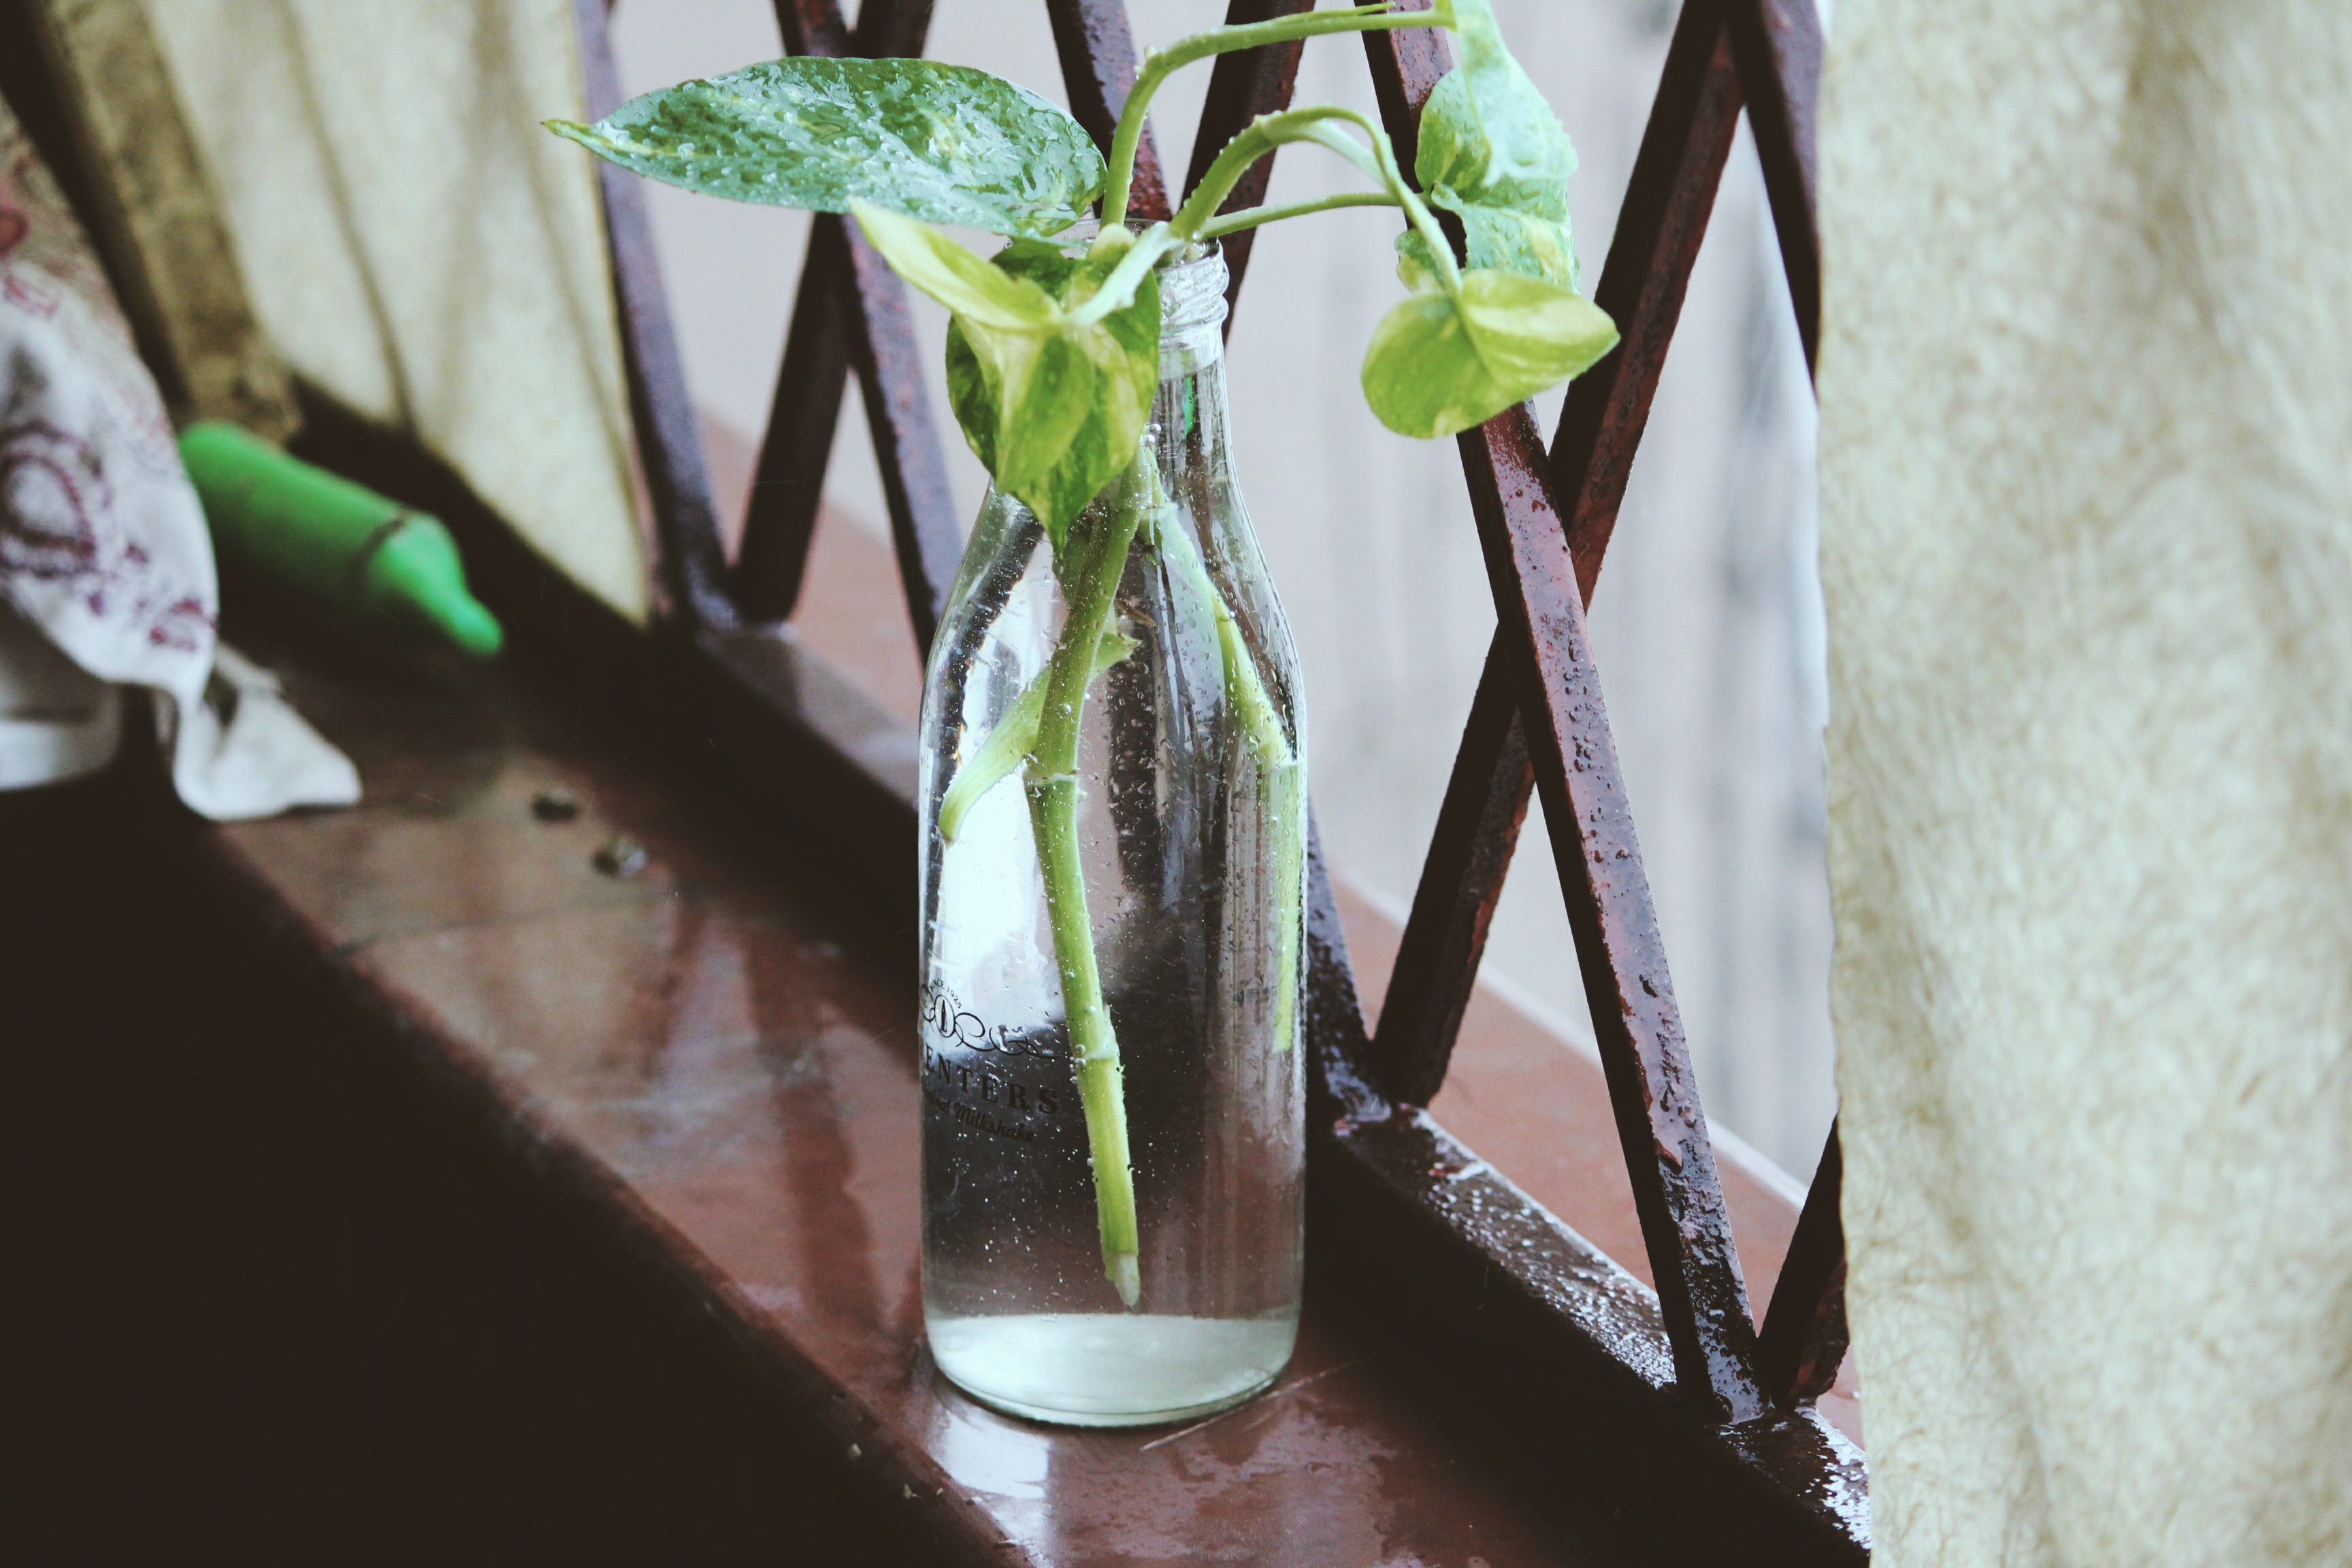 green plants on clear glass vase